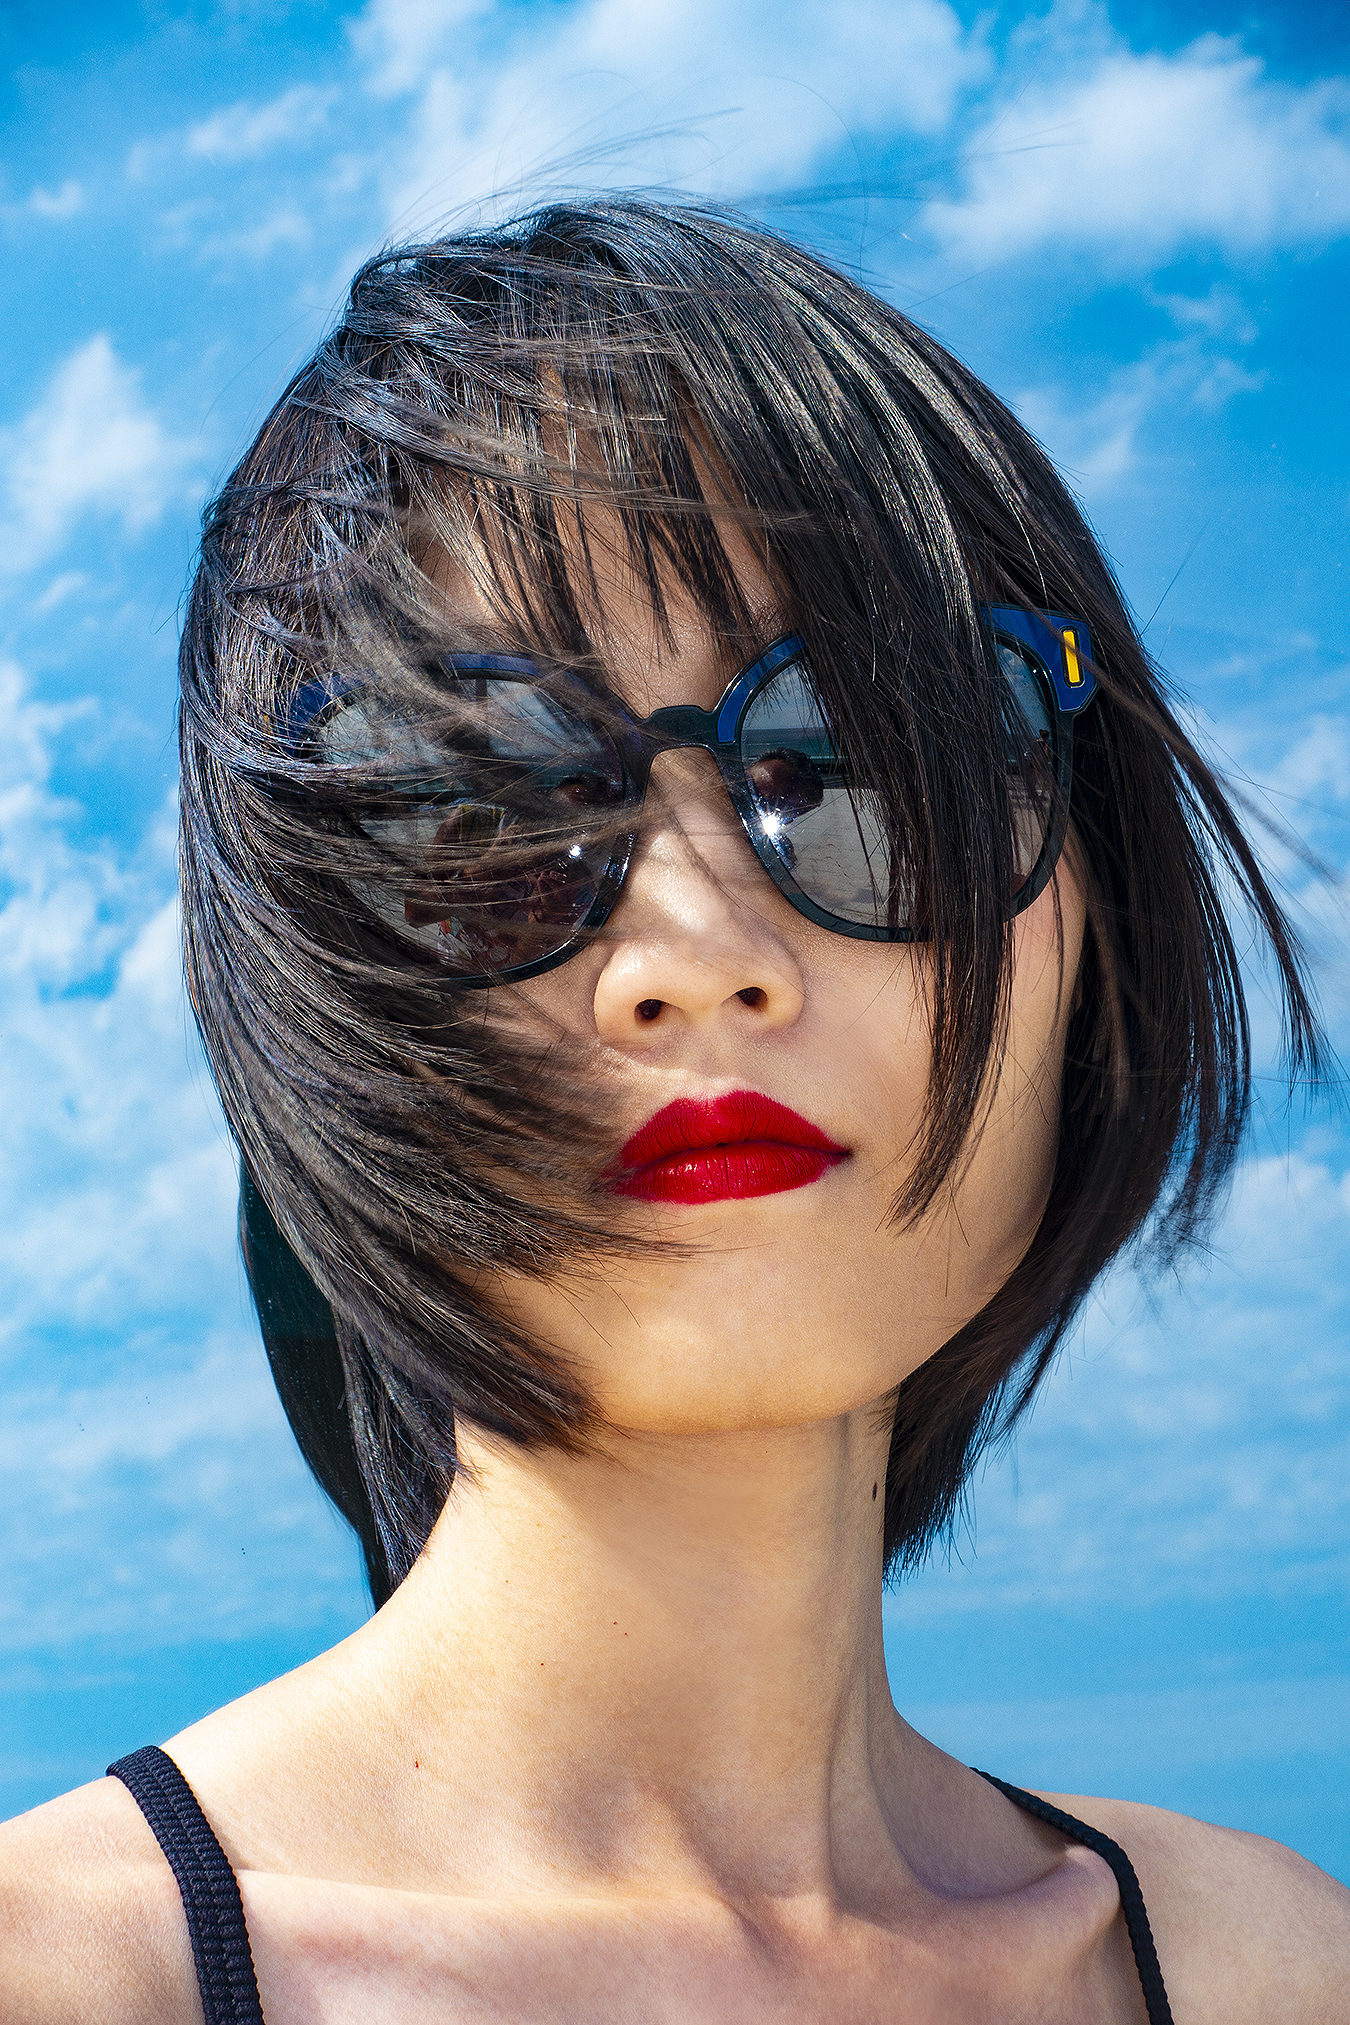 Tony_Ward_Studio_portrait_Linda_Ruan_black_bathing_suit_fashion_Prada_sunglasses